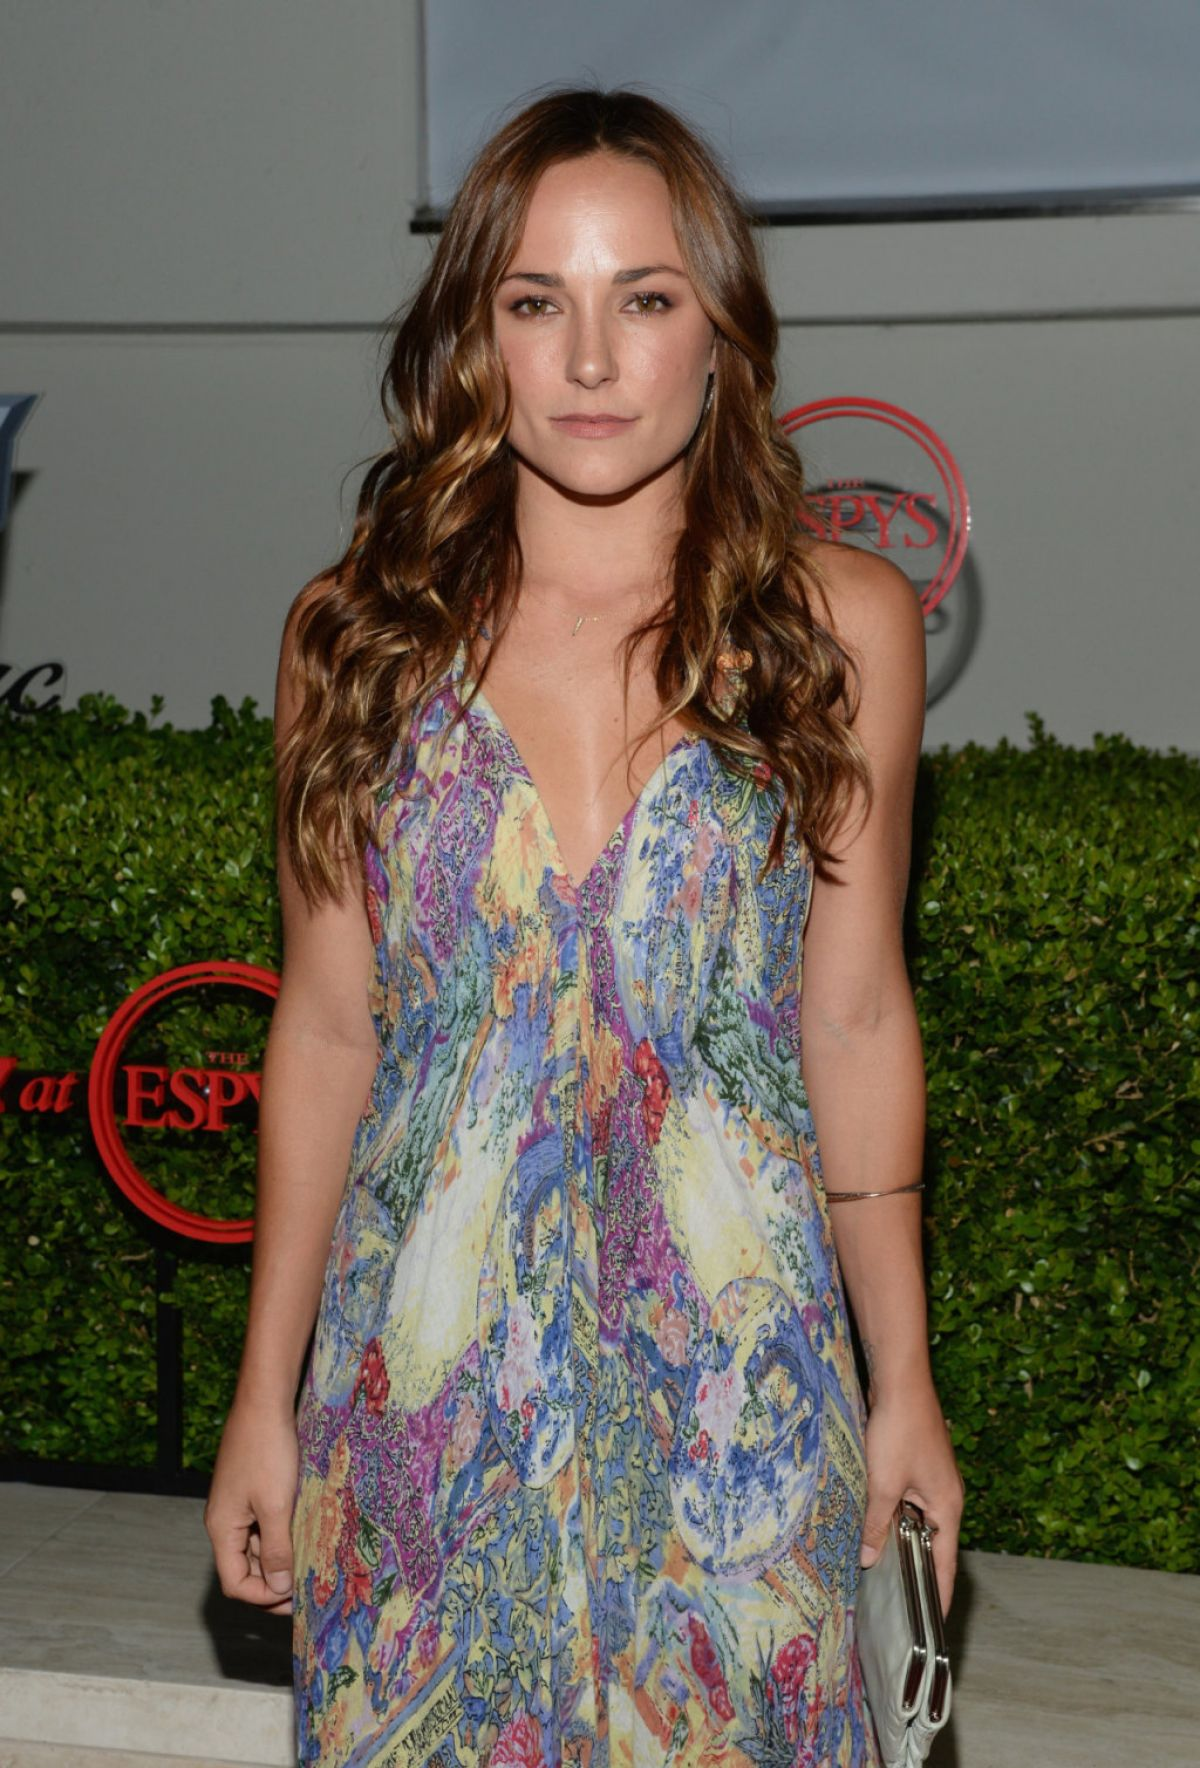 BRIANA EVIGAN at Body at Espys at Milk Studios in Hollywood